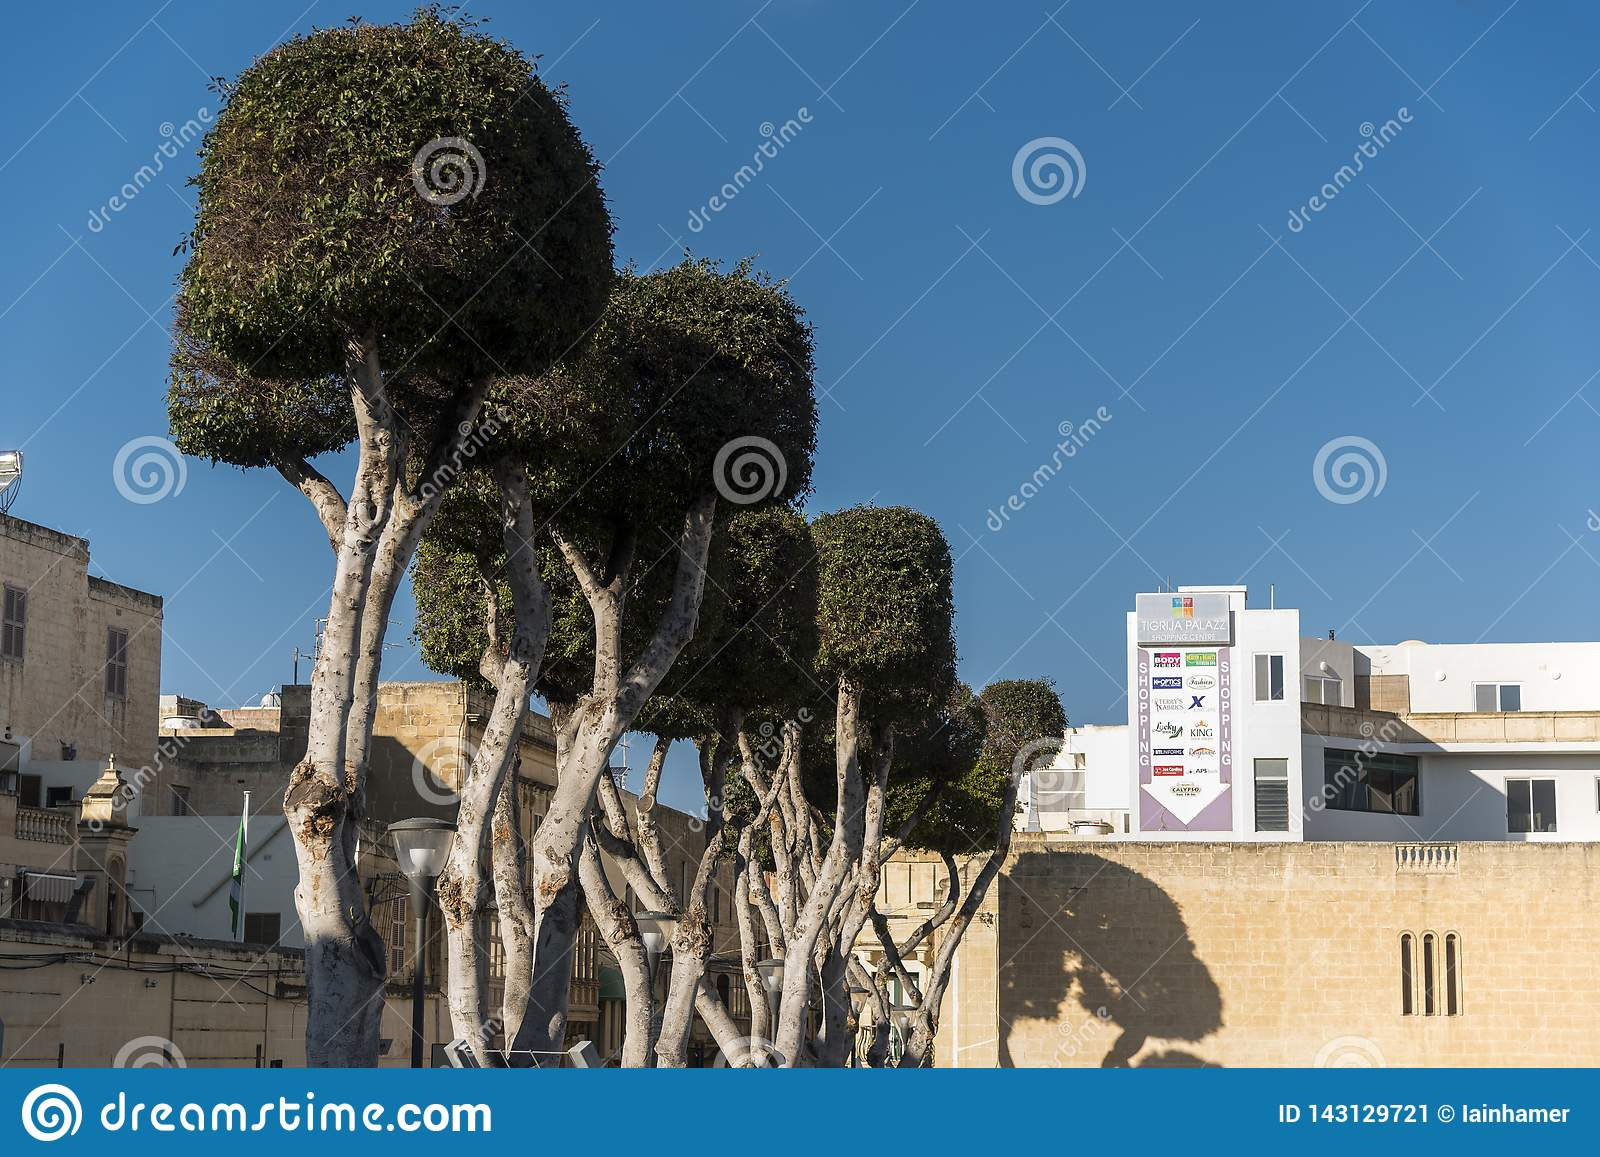 Pollarded trees on a street Victoria Gozo